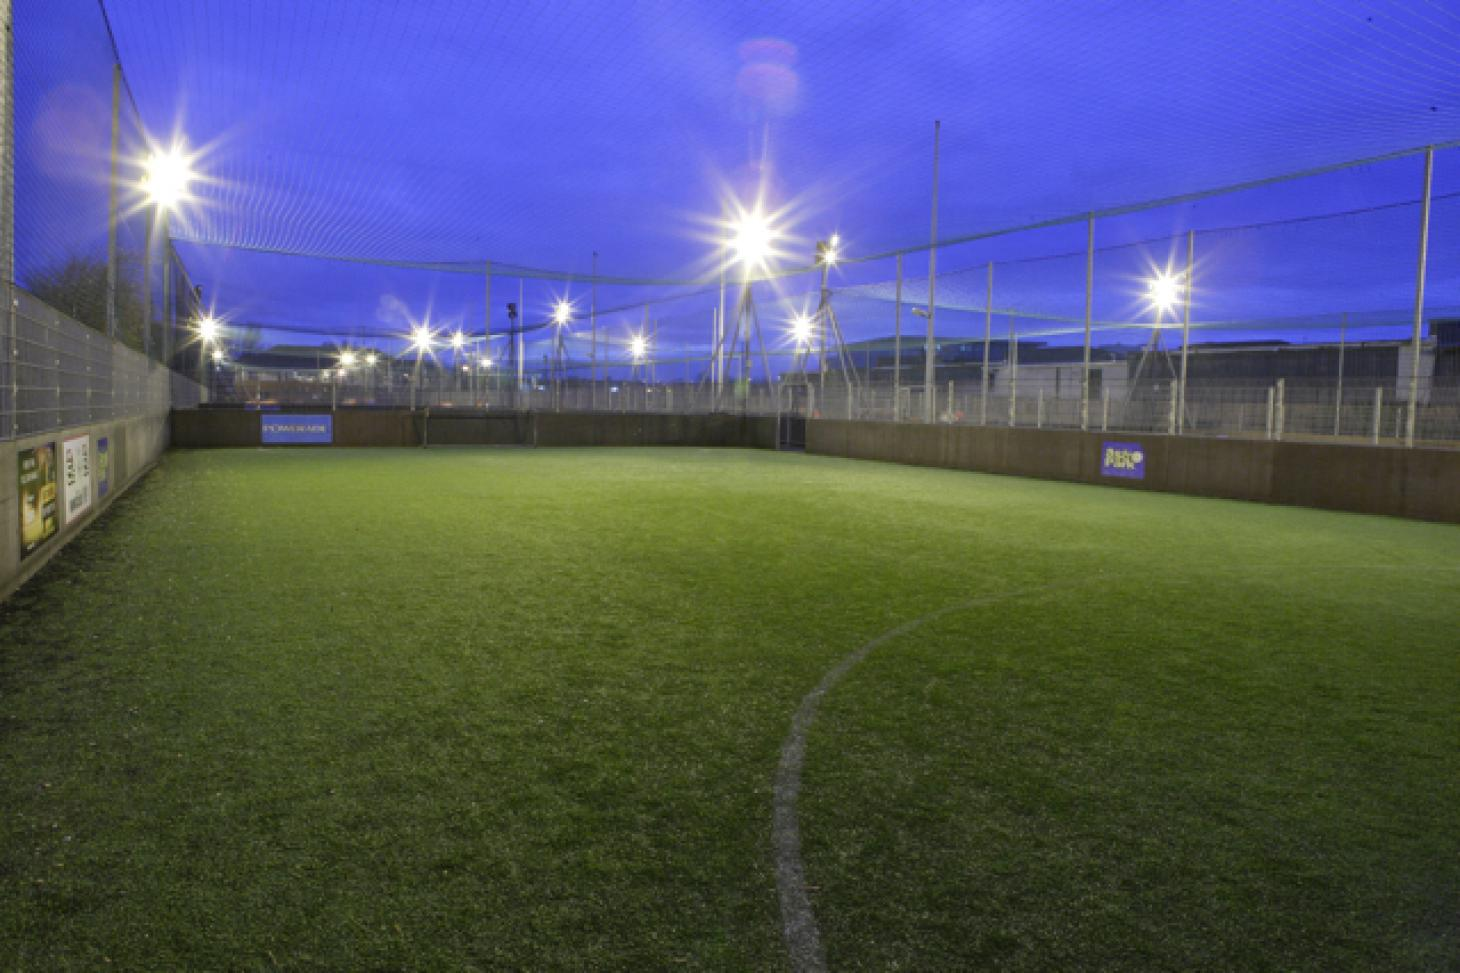 AstroPark, Tallaght 5 a side | Astroturf football pitch